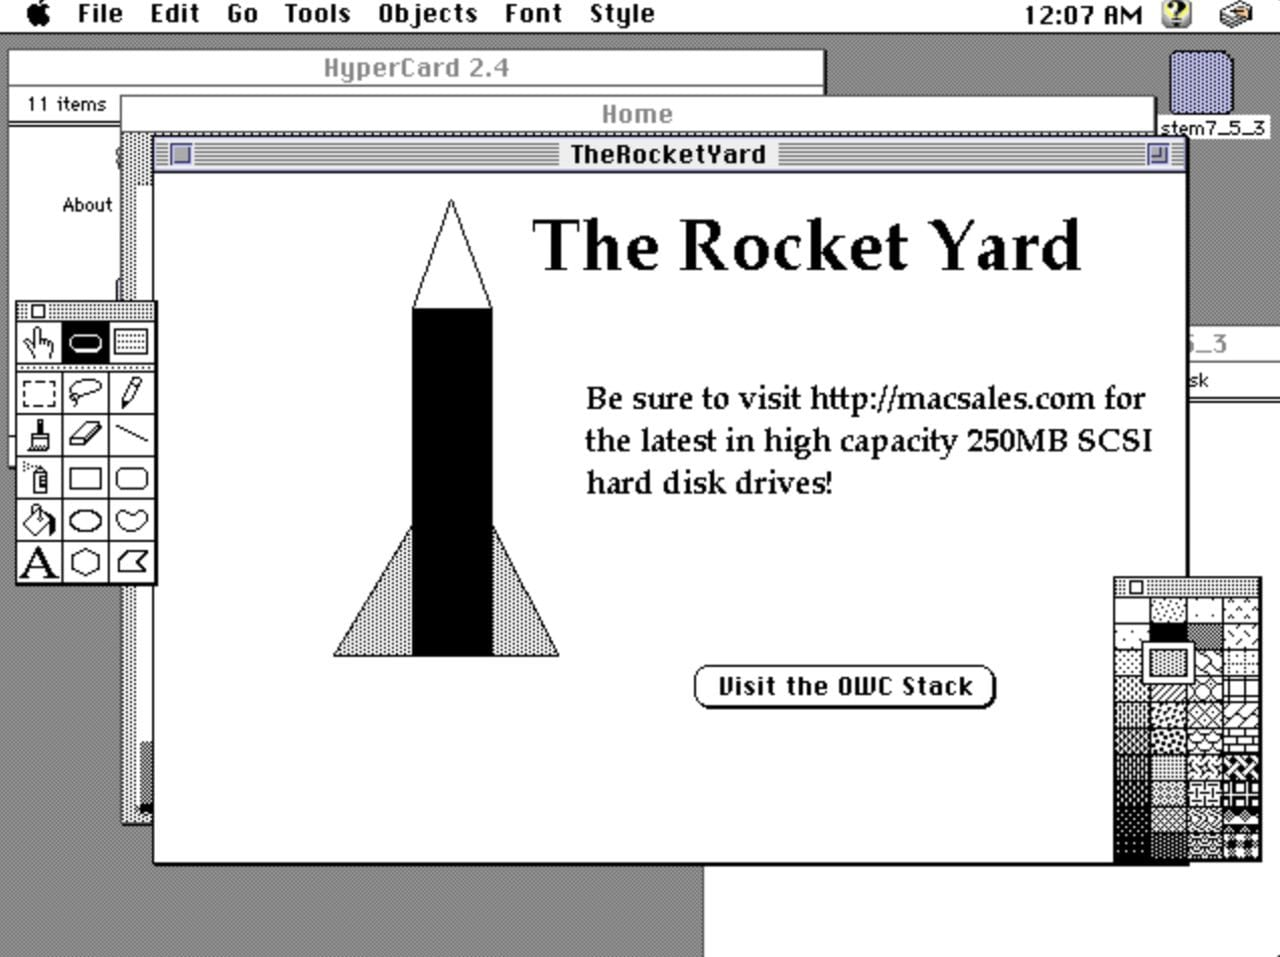 Imagining The Rocket Yard and MacSales.com as a HyperCard stack...